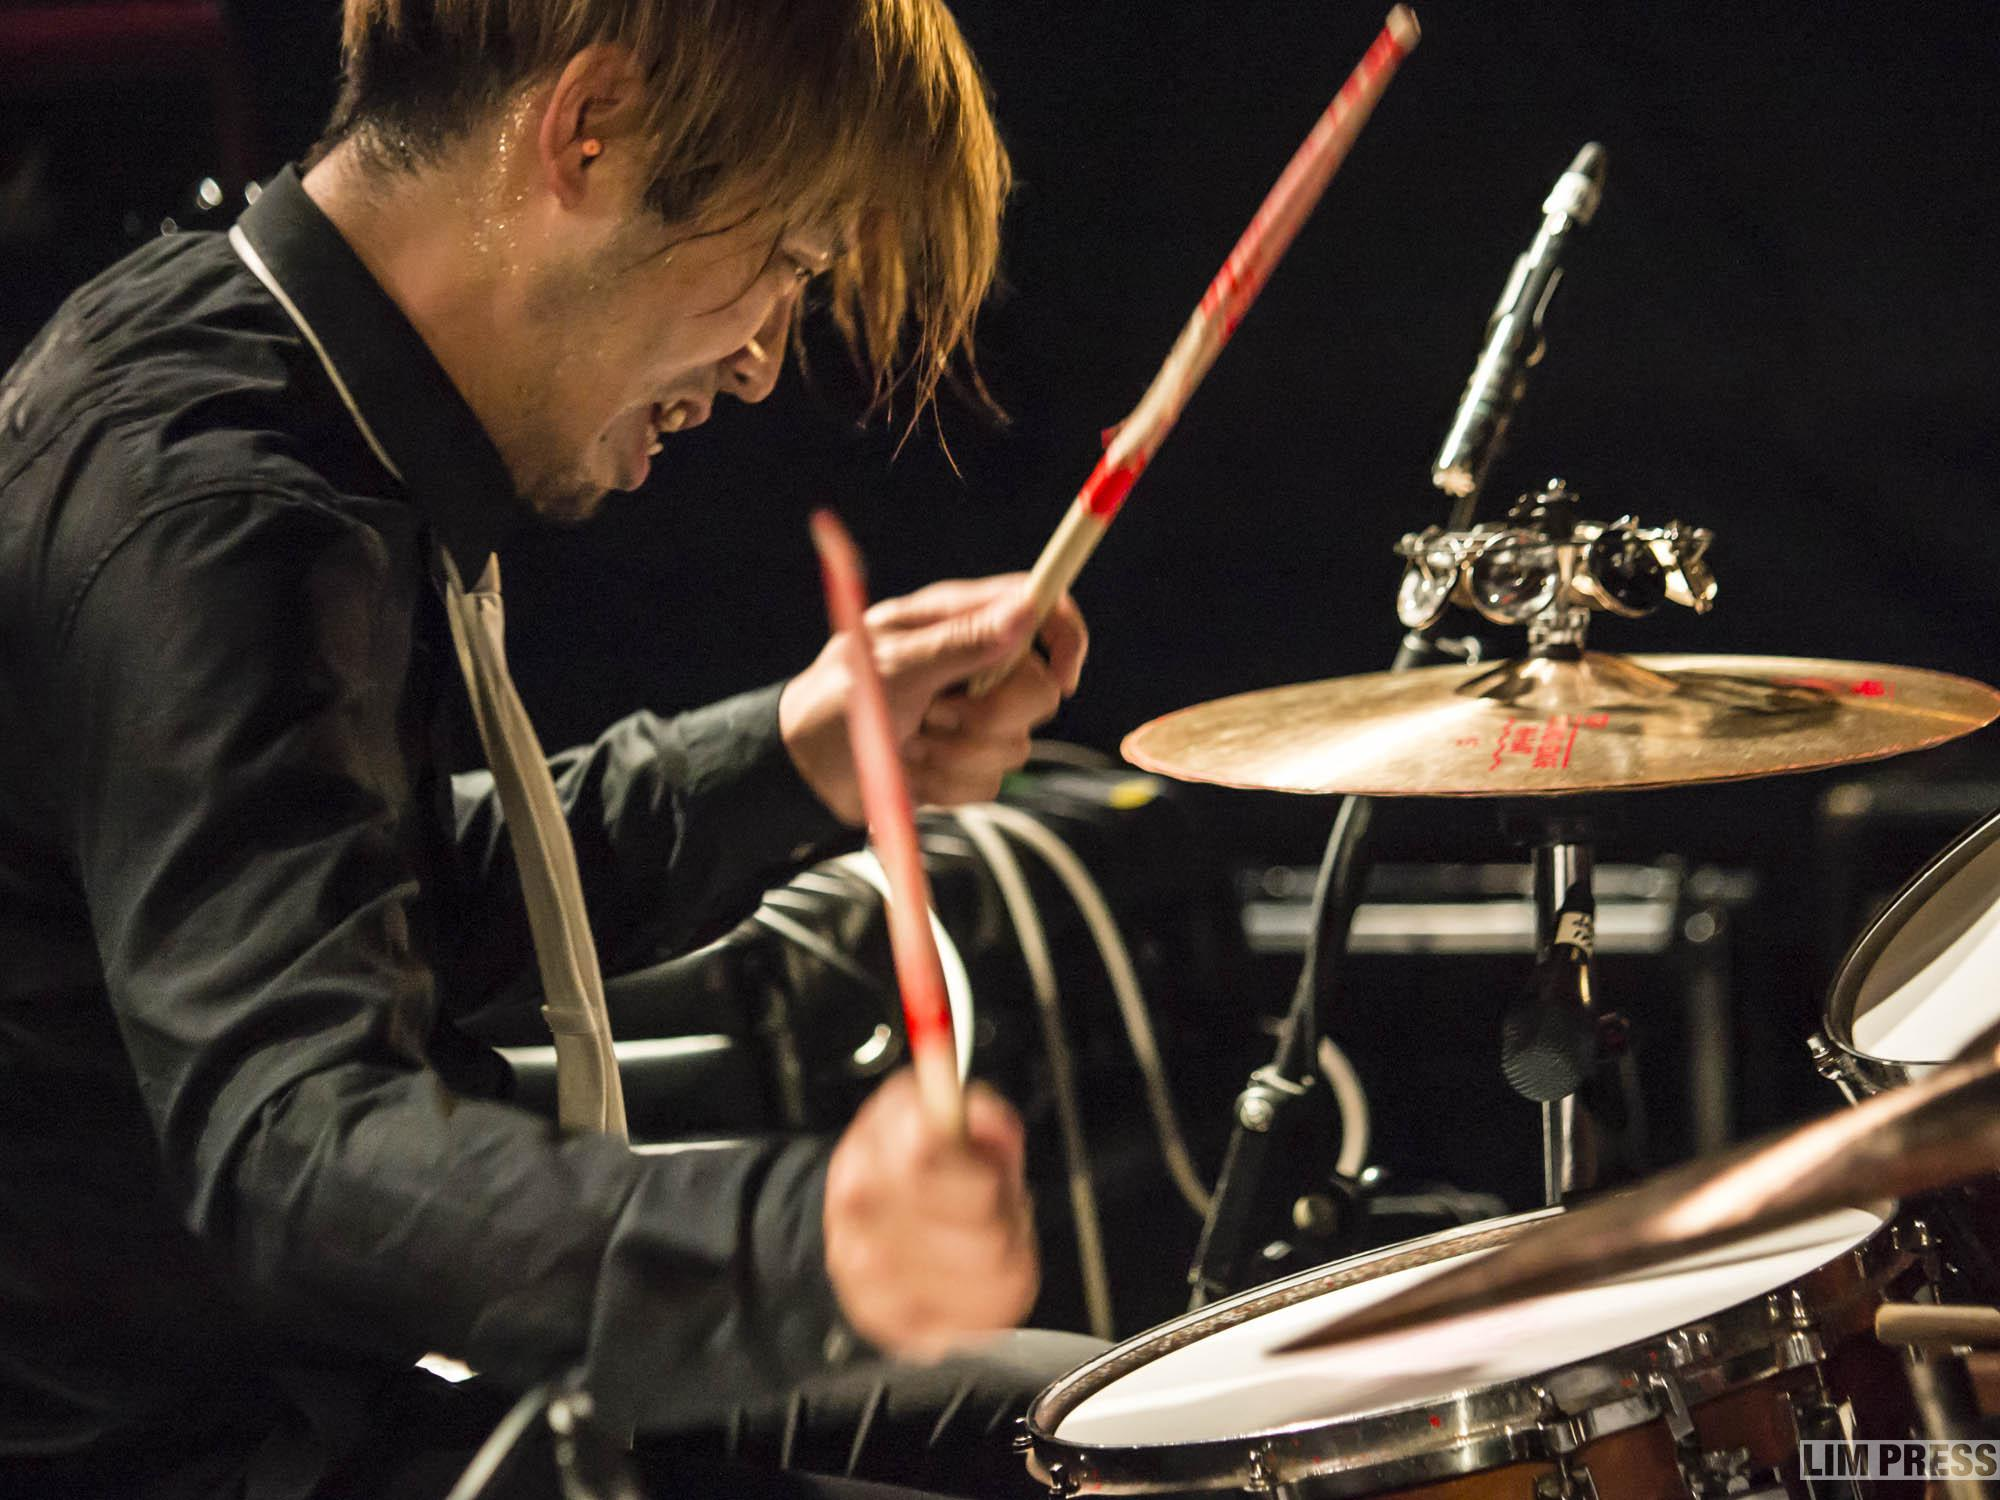 KING BROTHERS   京都 磔磔   2018.4.22